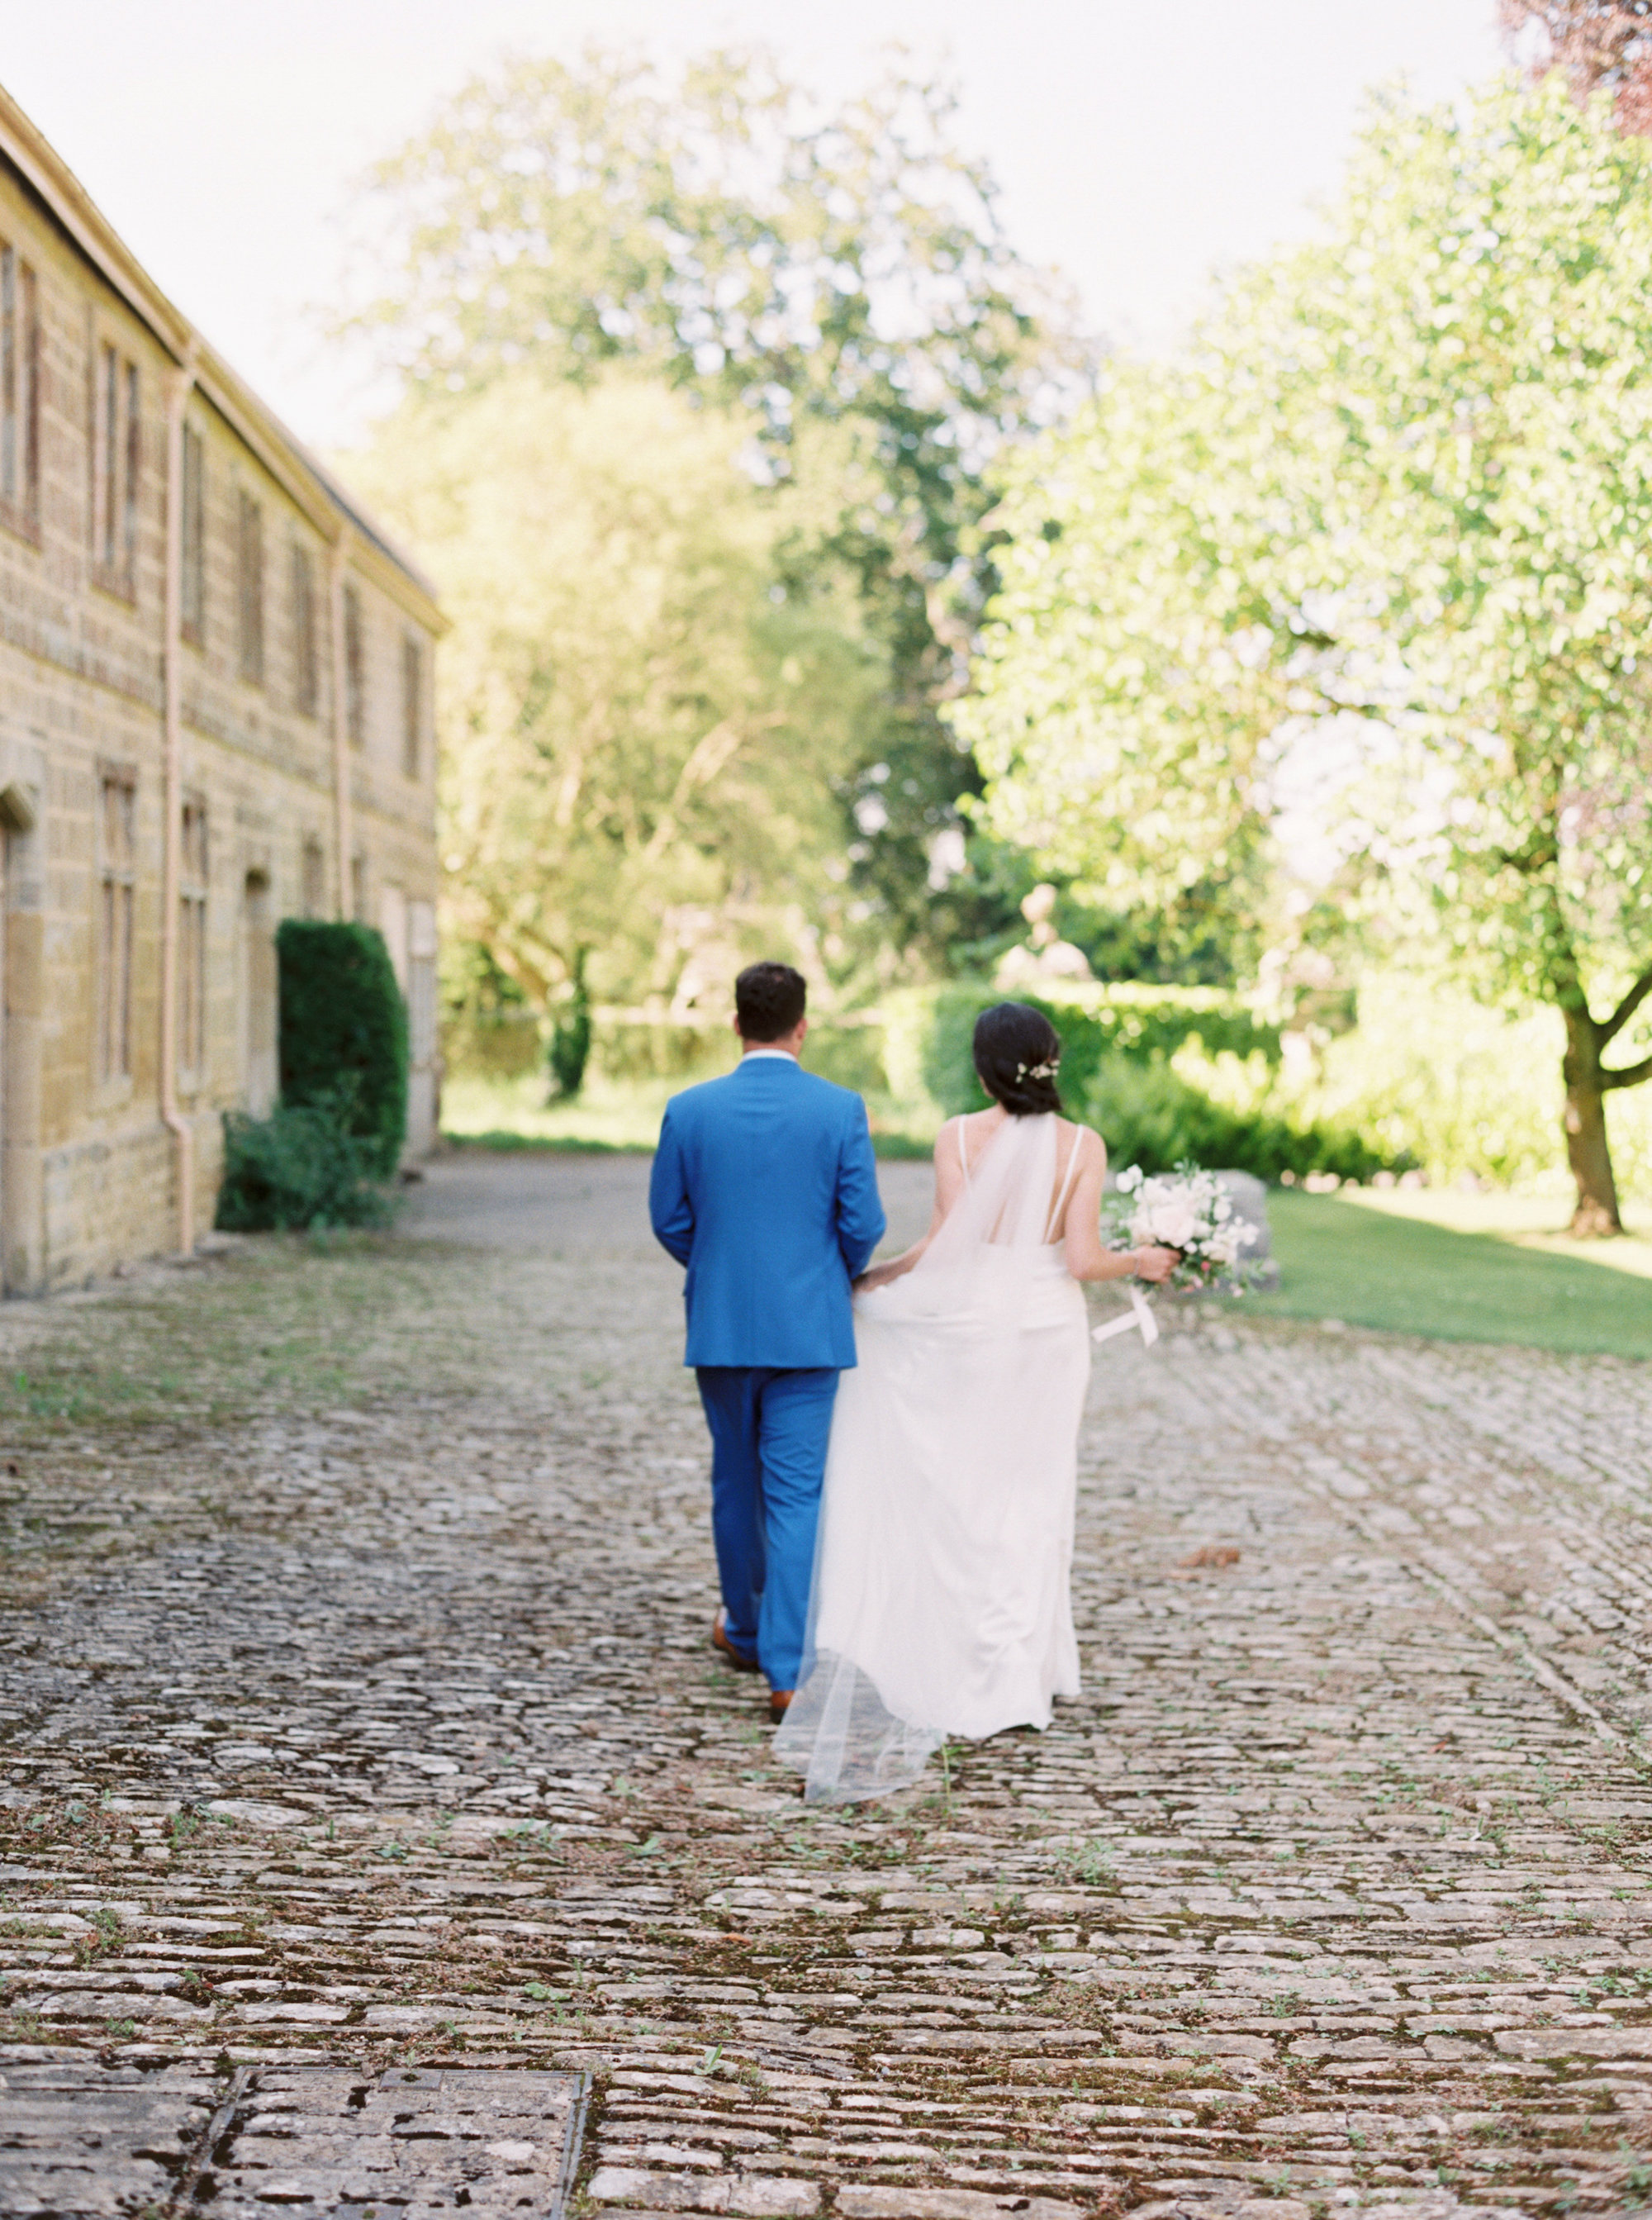 Luxury Wedding Planner UK | Jennifer & Timothy's English Country Manor Wedding | Soft Pink Pale Blue White and Silver Toned Green Neutral Tones American Bride North Cadbury Court | Nicole Colwell Photography  0021.jpg